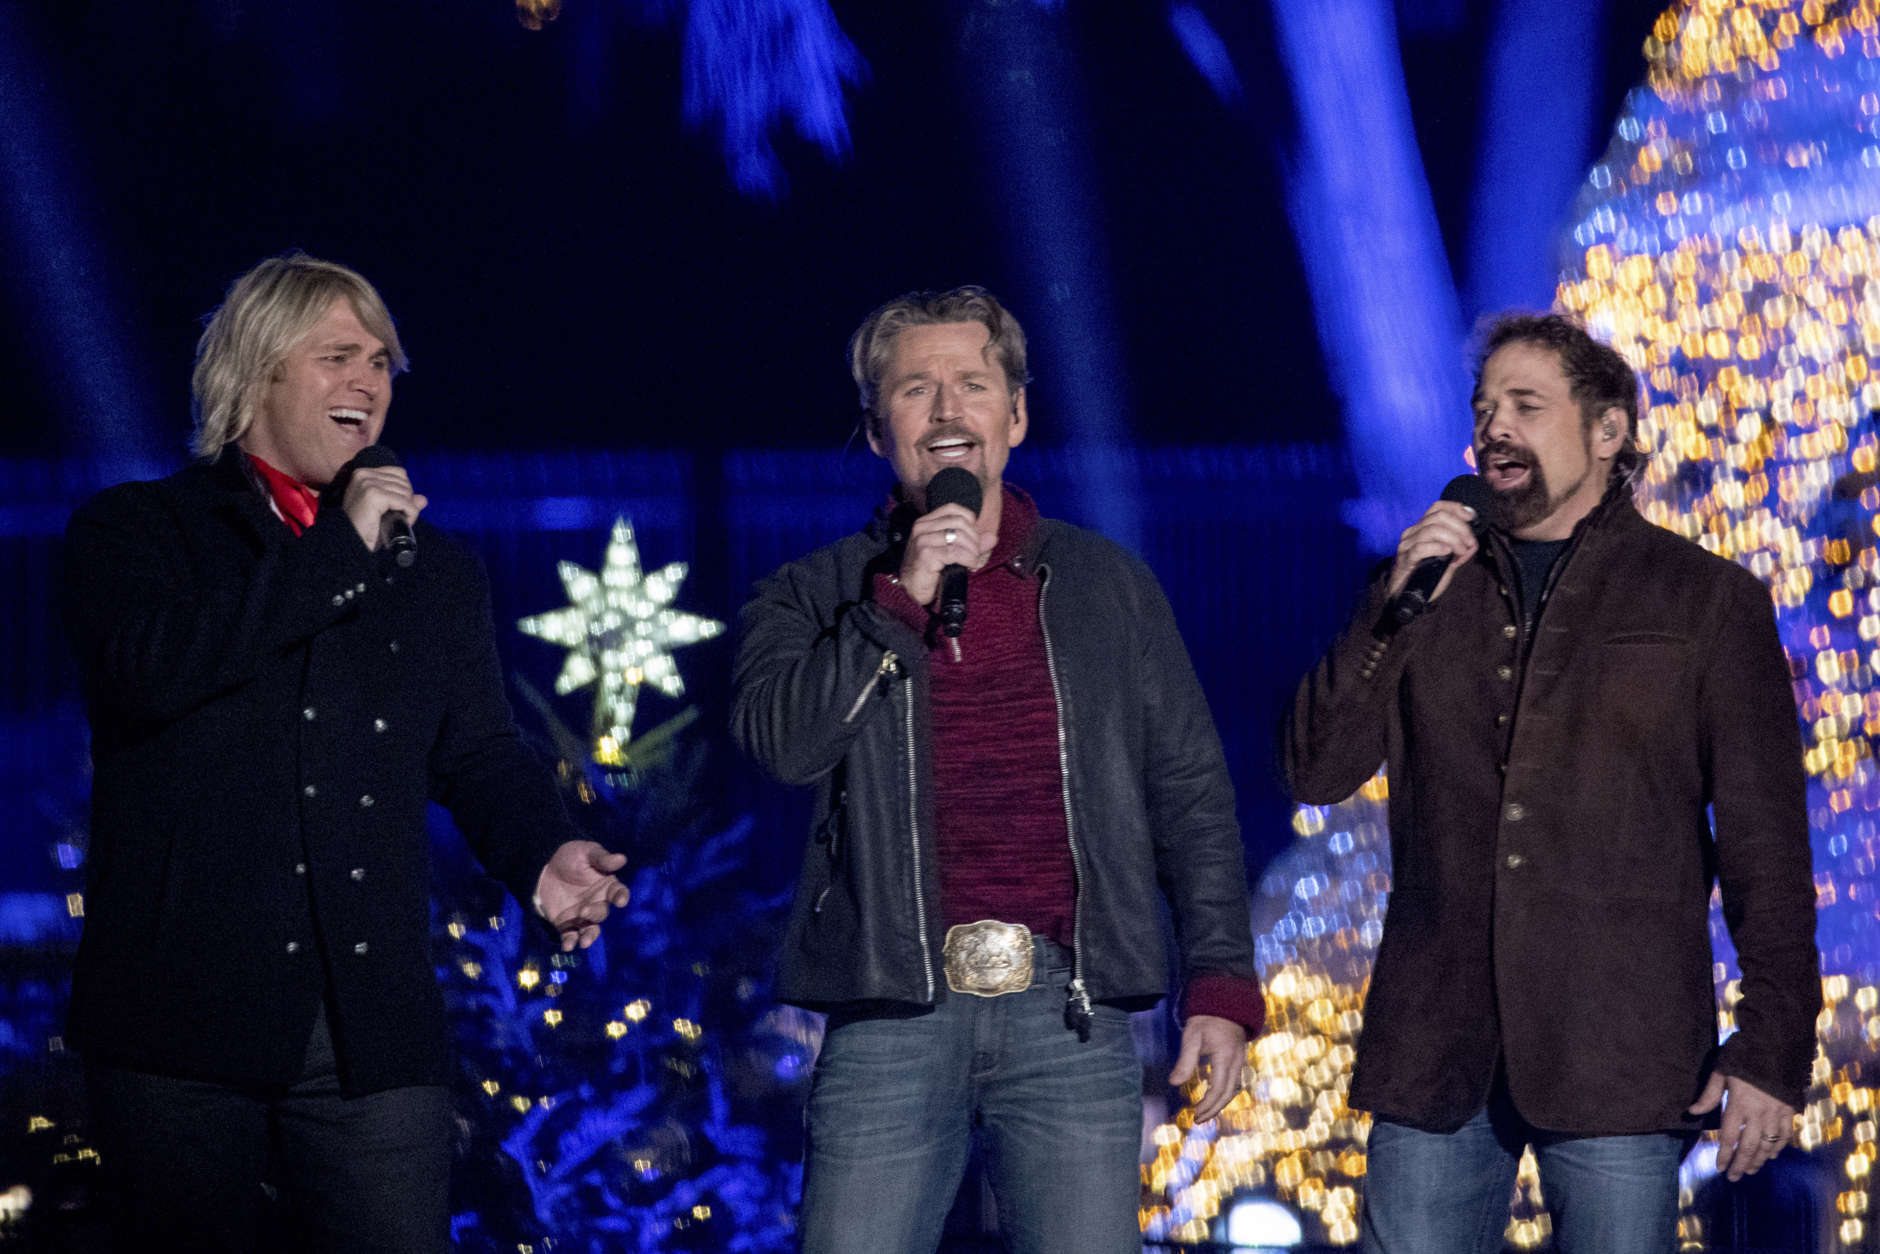 The Texas Tenors perform during the lighting ceremony for the 2017 National Christmas Tree on the Ellipse near the White House, Thursday, Nov. 30, 2017, in Washington. (AP Photo/Andrew Harnik)